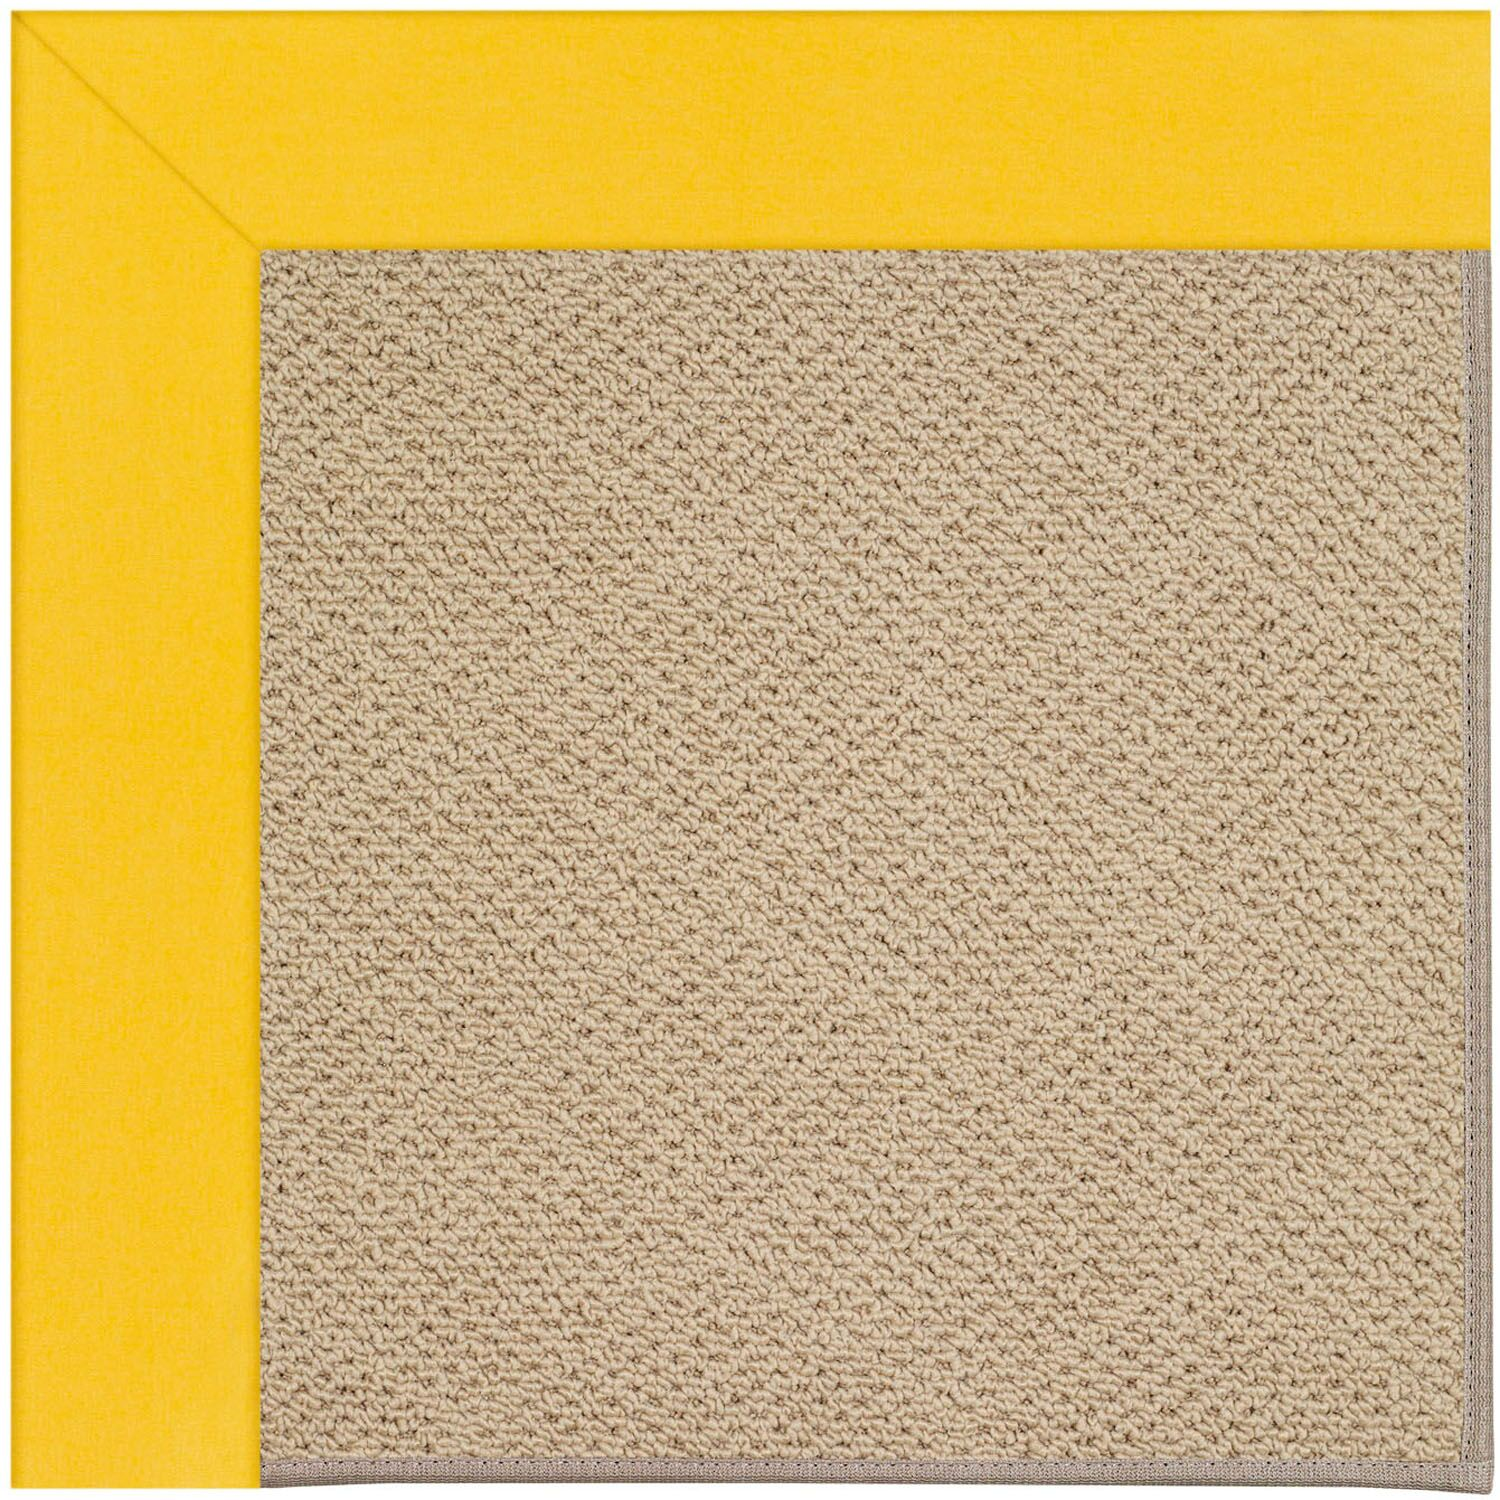 Lisle Machine Tufted Summertime Yellow Indoor/Outdoor Area Rug Rug Size: Rectangle 9' x 12'